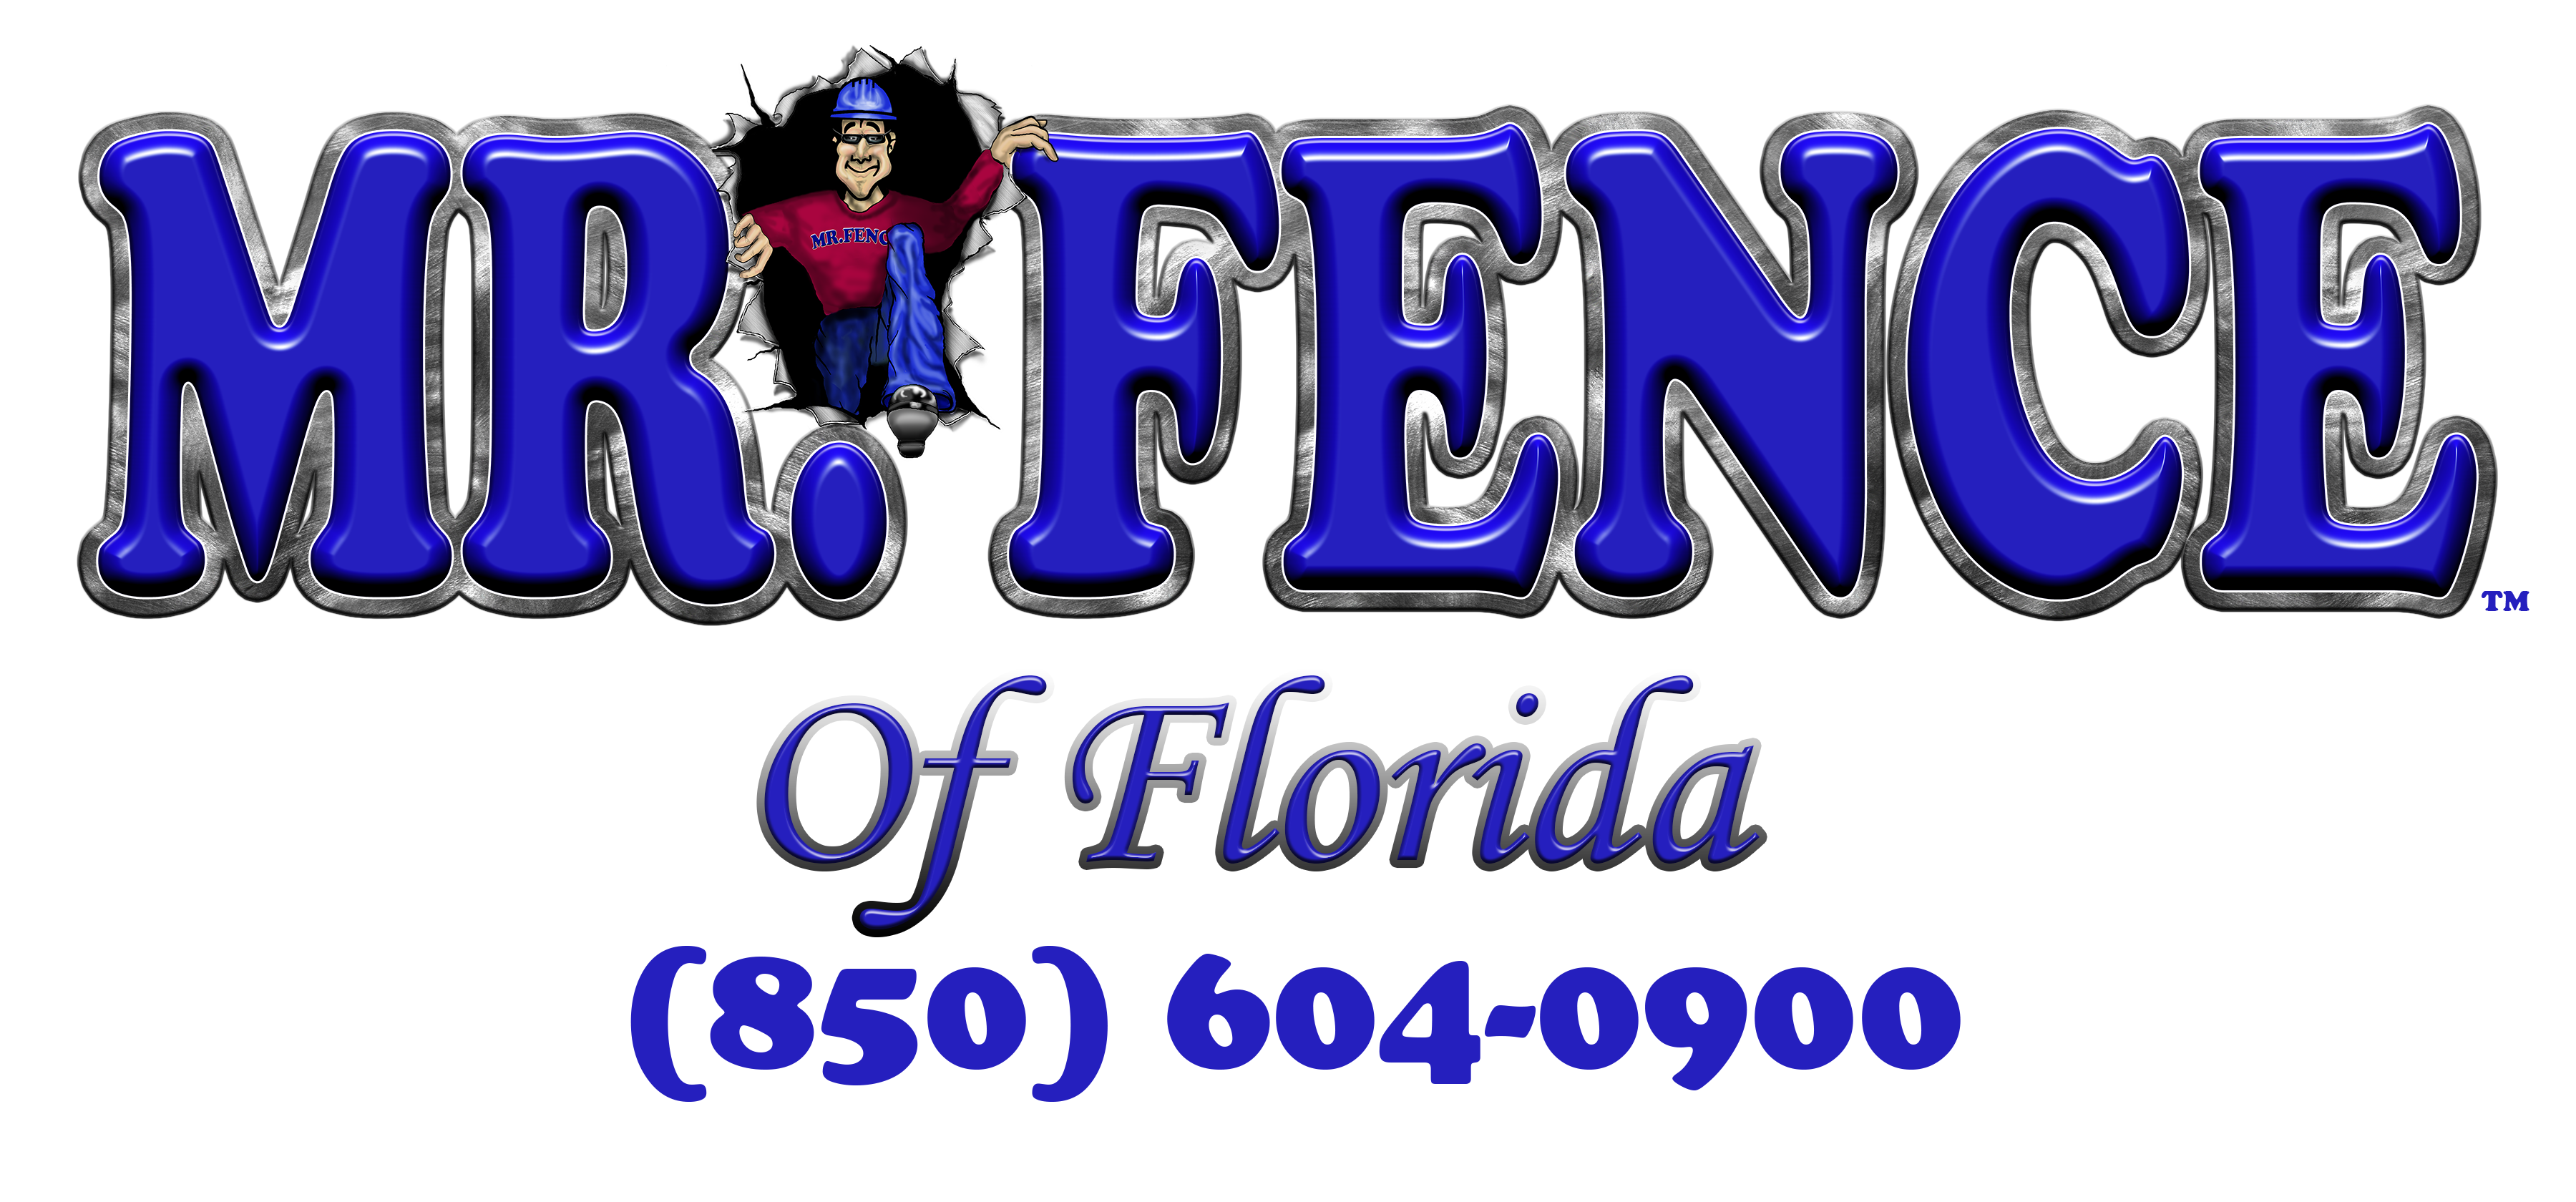 Mr. Fence of Florida reviews | 1219 Transmitter Rd - Panama City FL